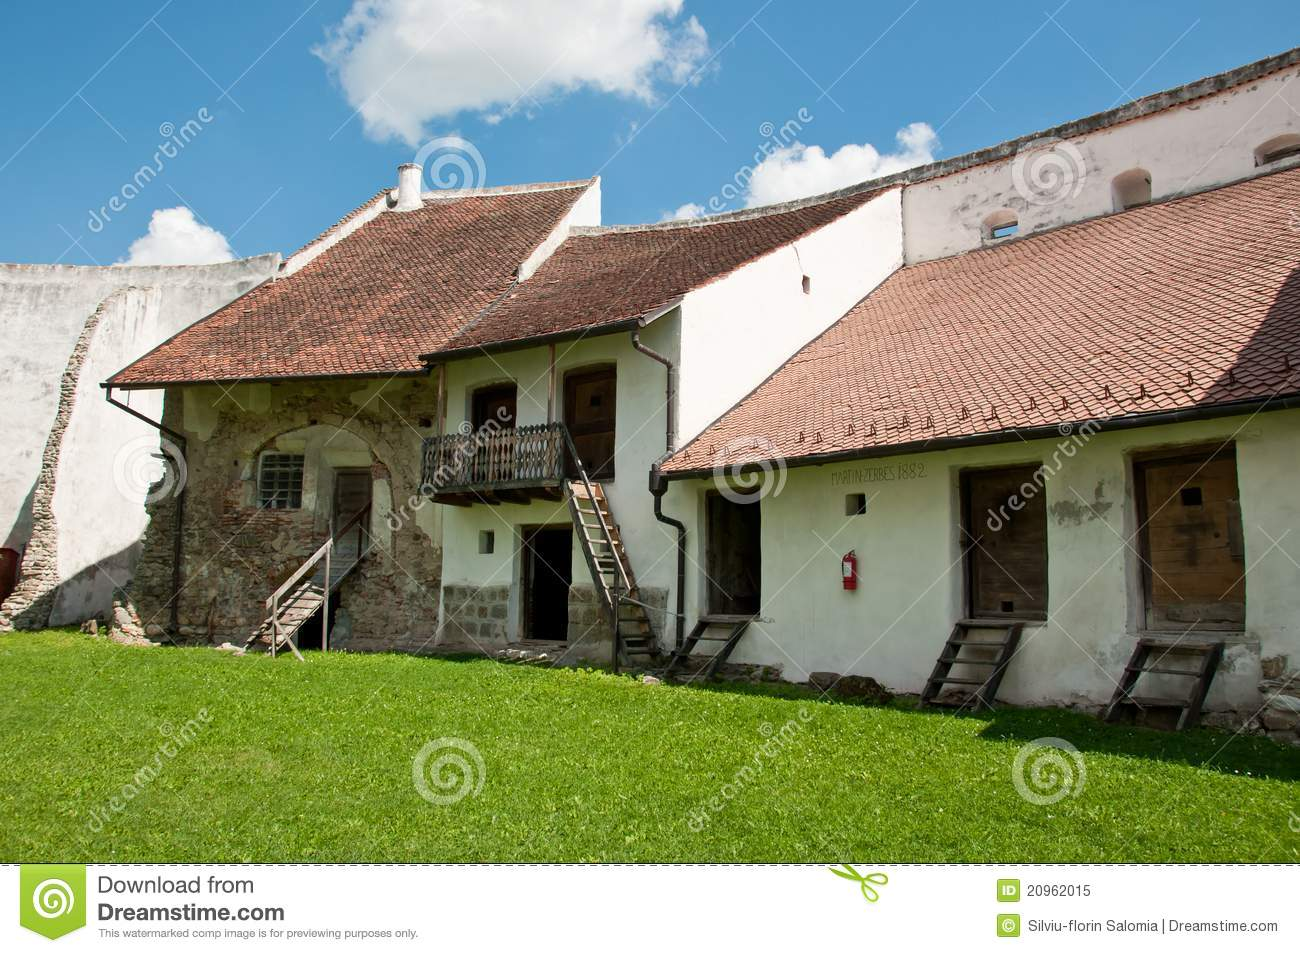 Medieval homes inside a rural romanian fortress stock for Fortress homes